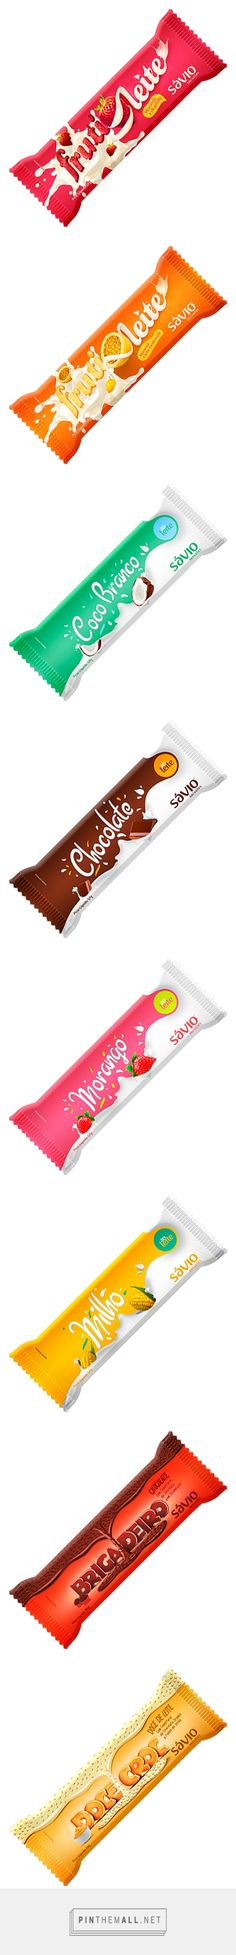 Pin curated by Ice Cream Packaging, Cake Packaging, Food Design, Creative Design, Limited Edition Packaging, Label Design, Package Design, Chocolate Brands, Food Labels